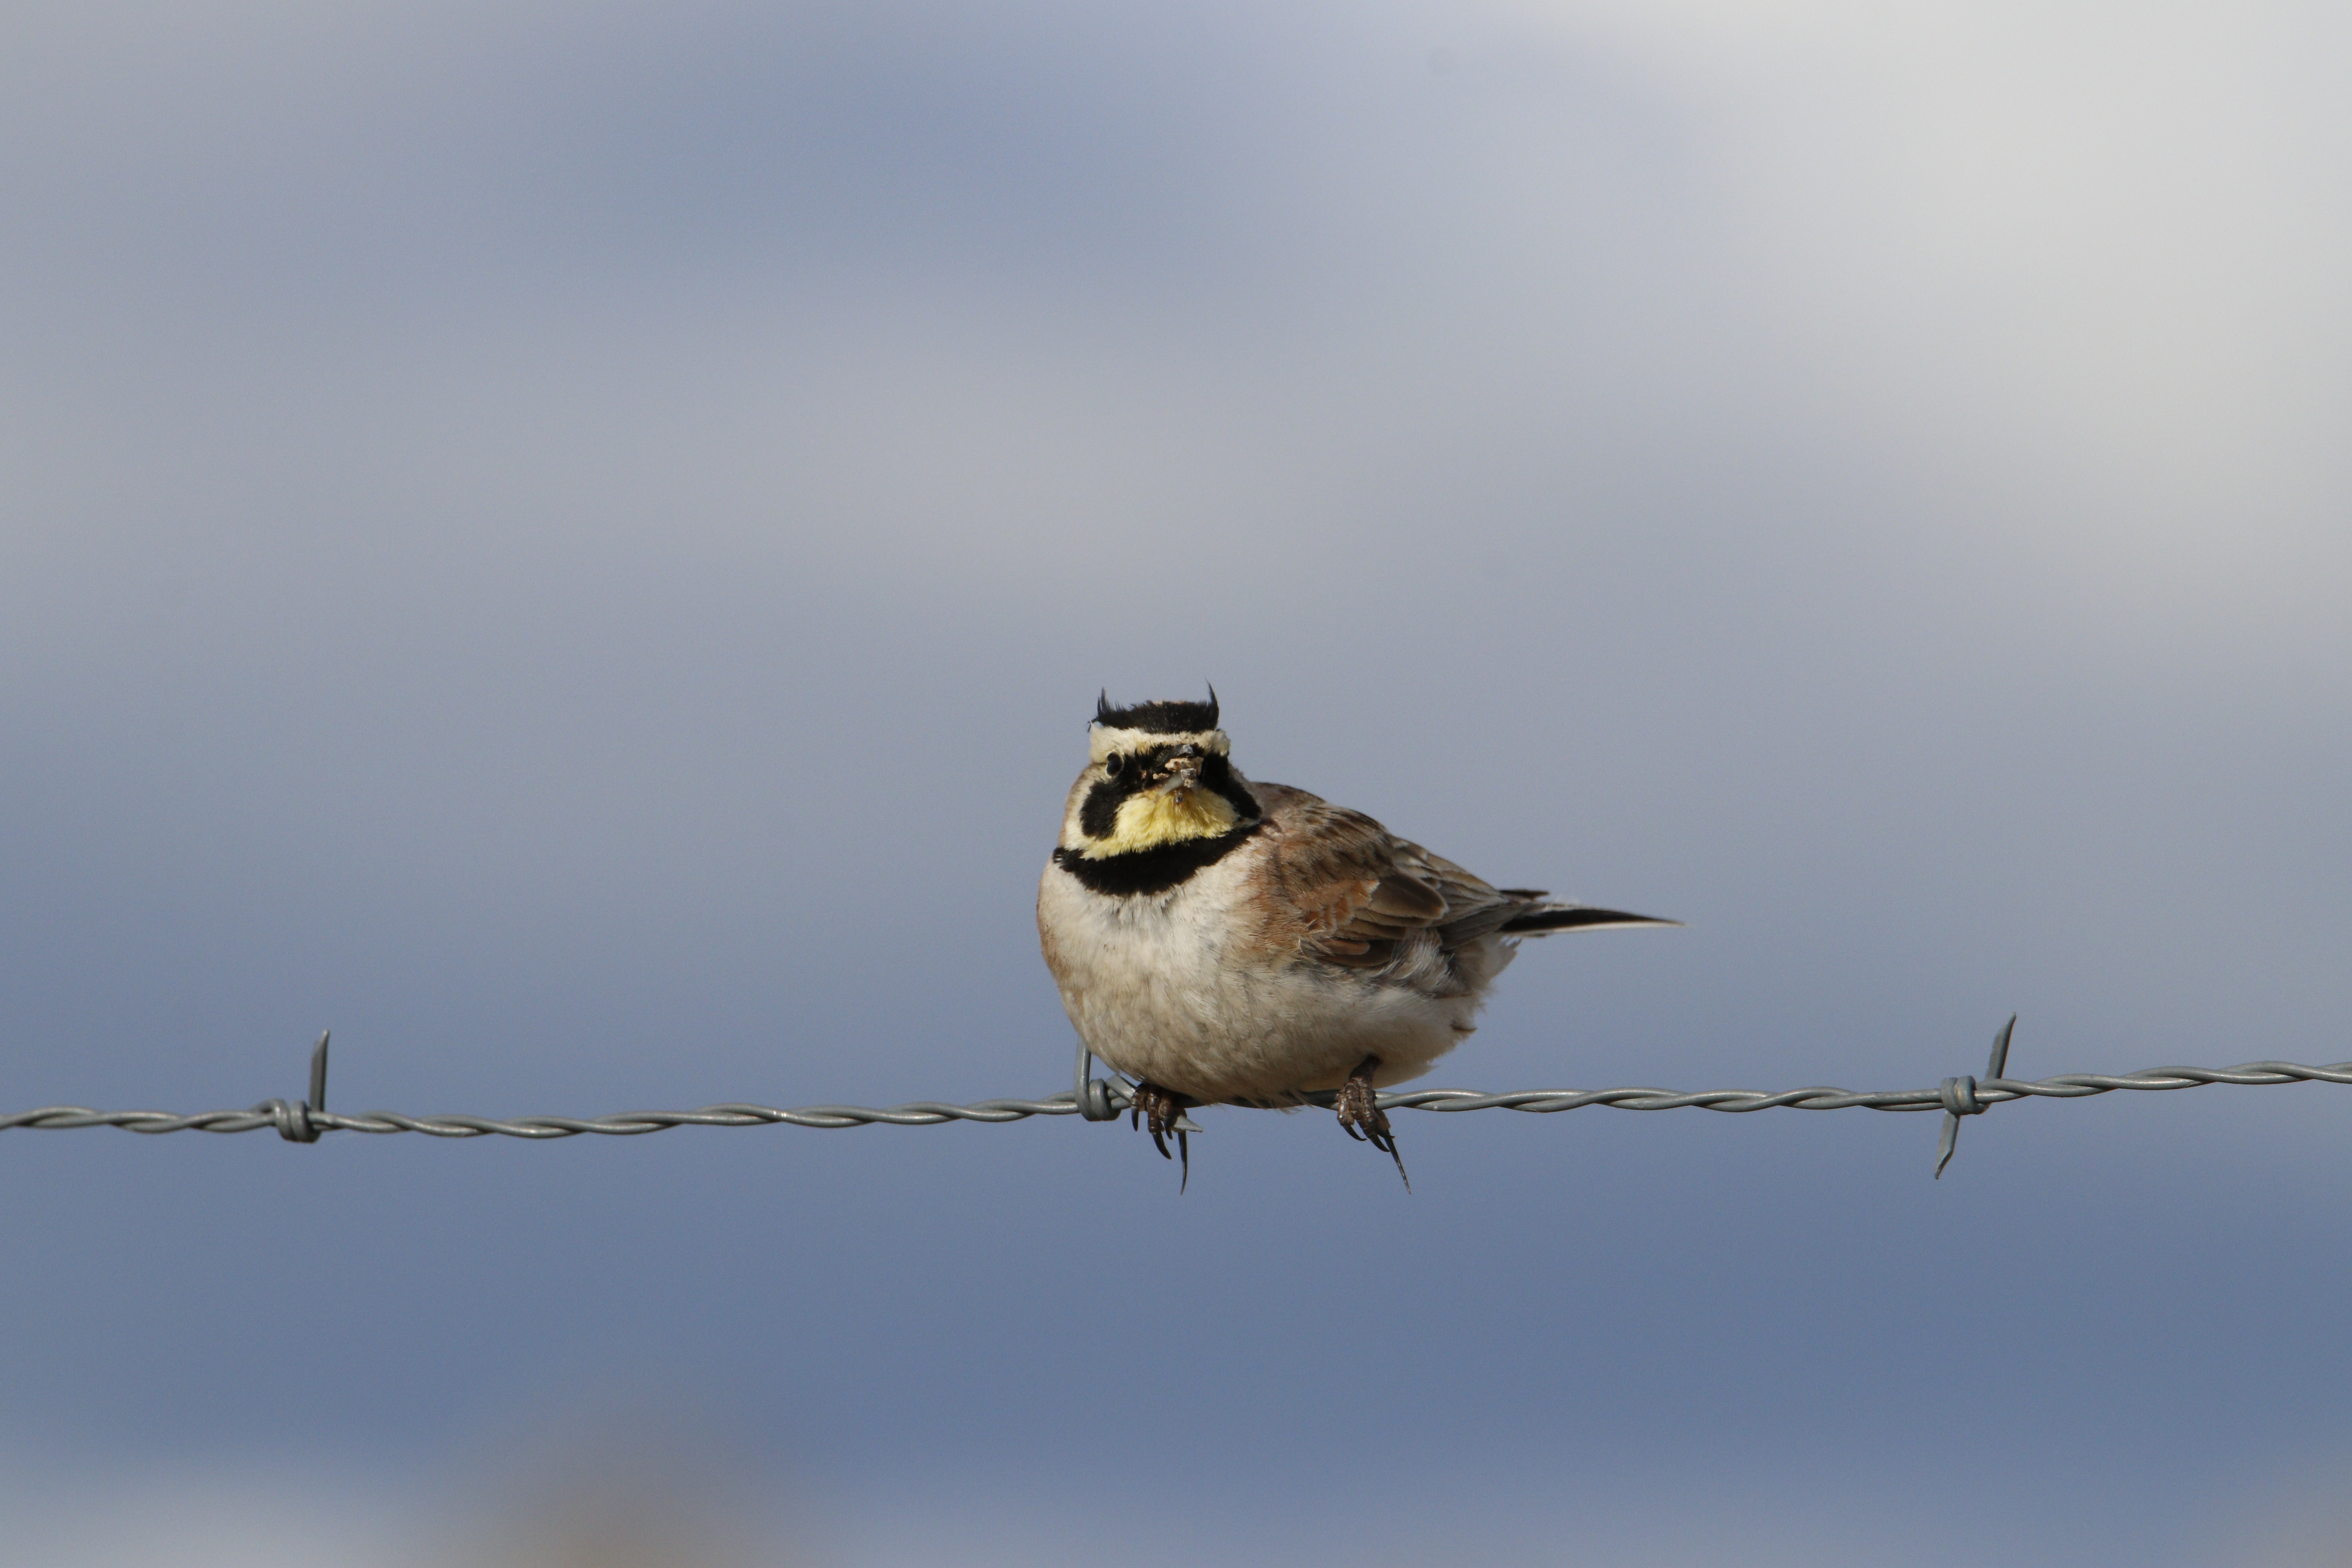 a horned lark, with brown body, yellow face, and two black feather tufts on its head give the appearance of horns